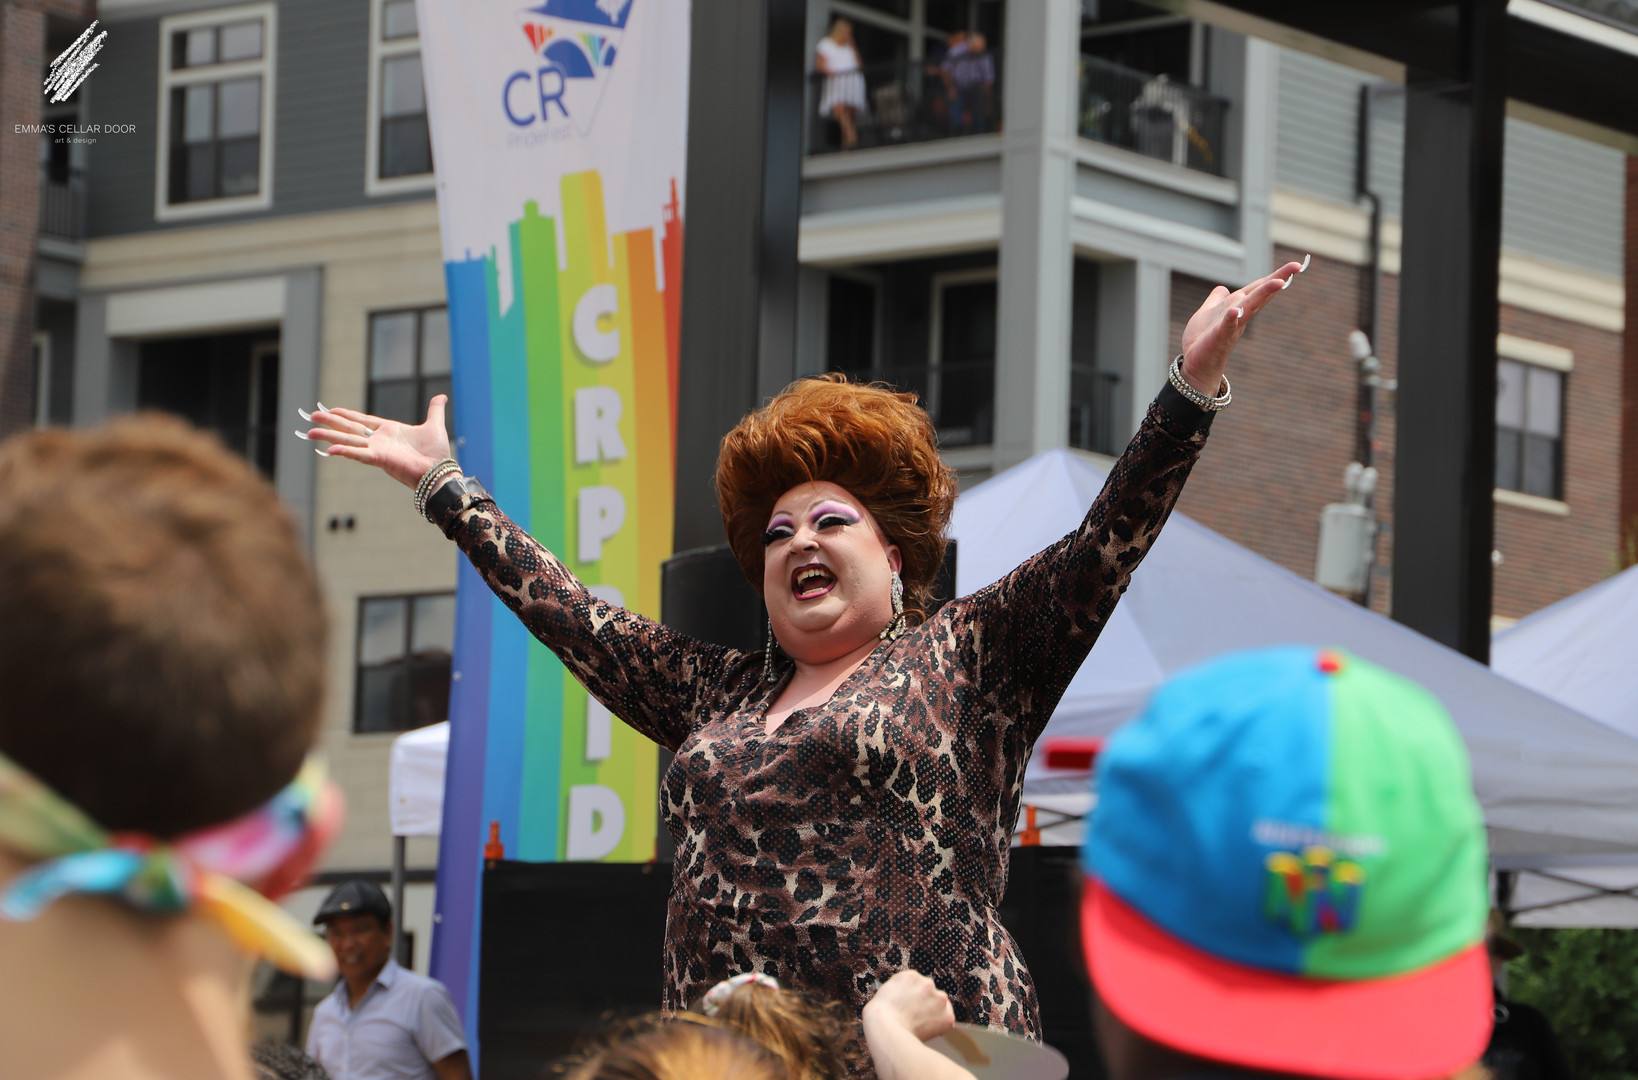 Roxie Mess at CRPrideFest